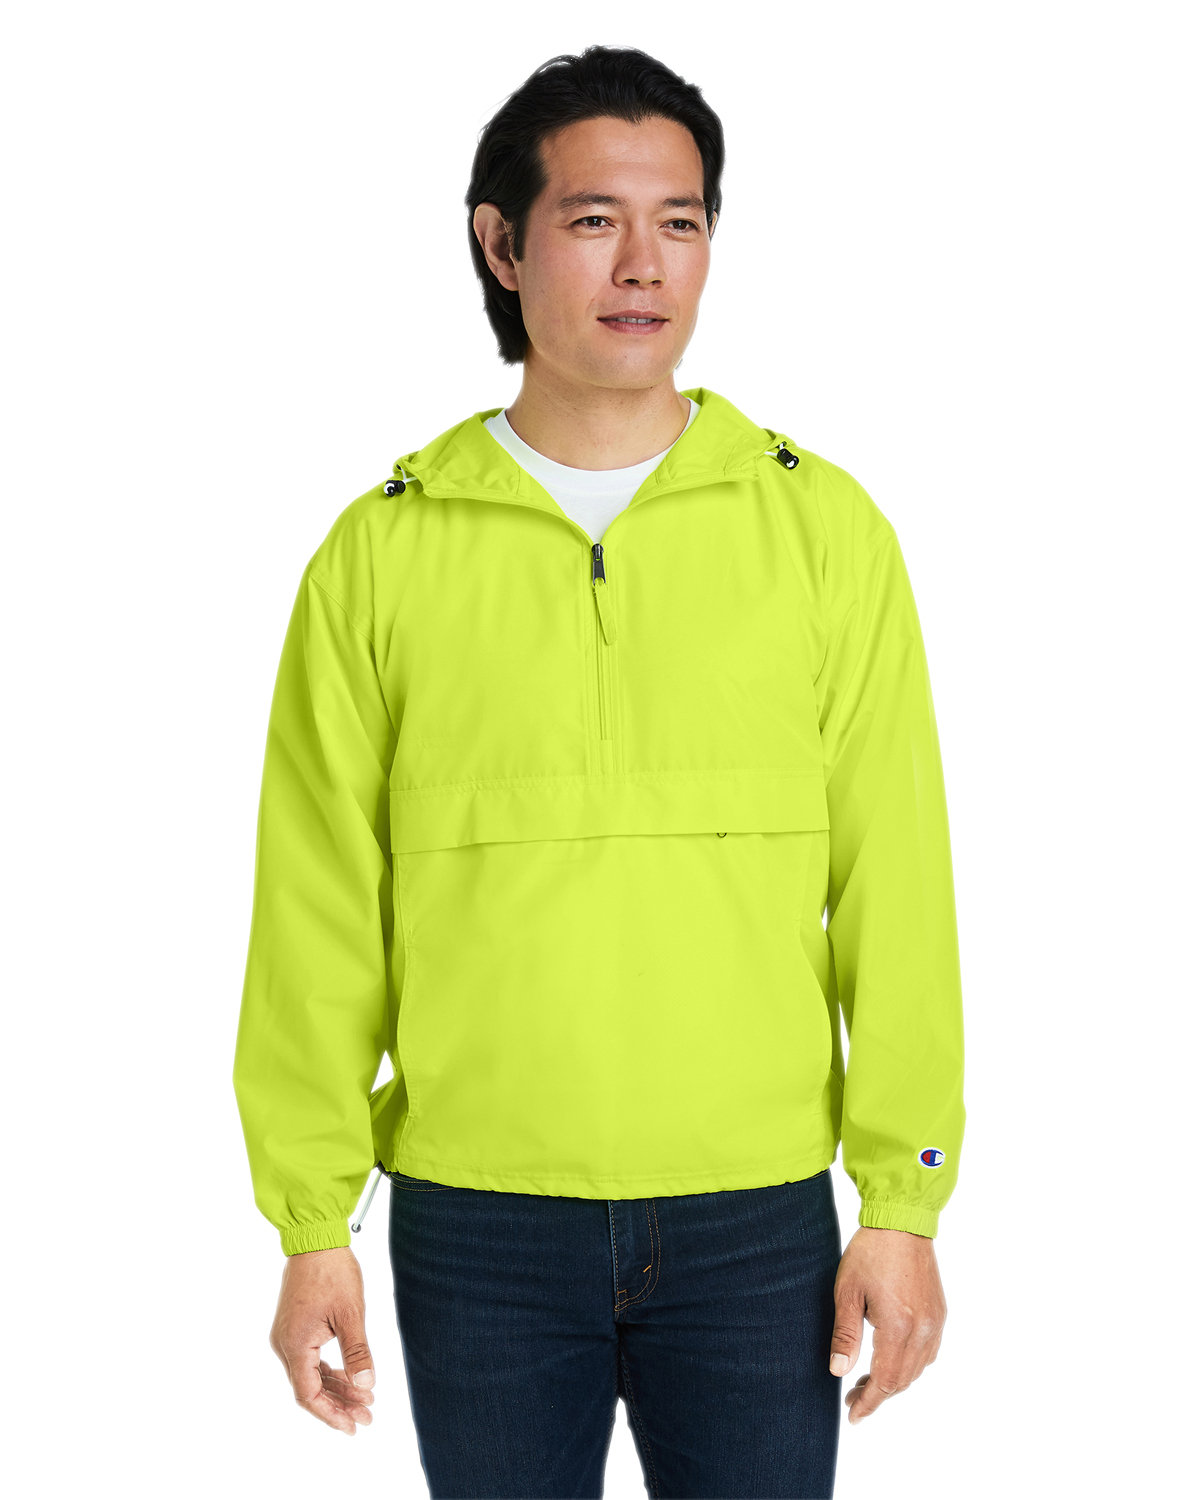 Champion Adult Packable Anorak 1/4 Zip Jacket SAFETY GREEN